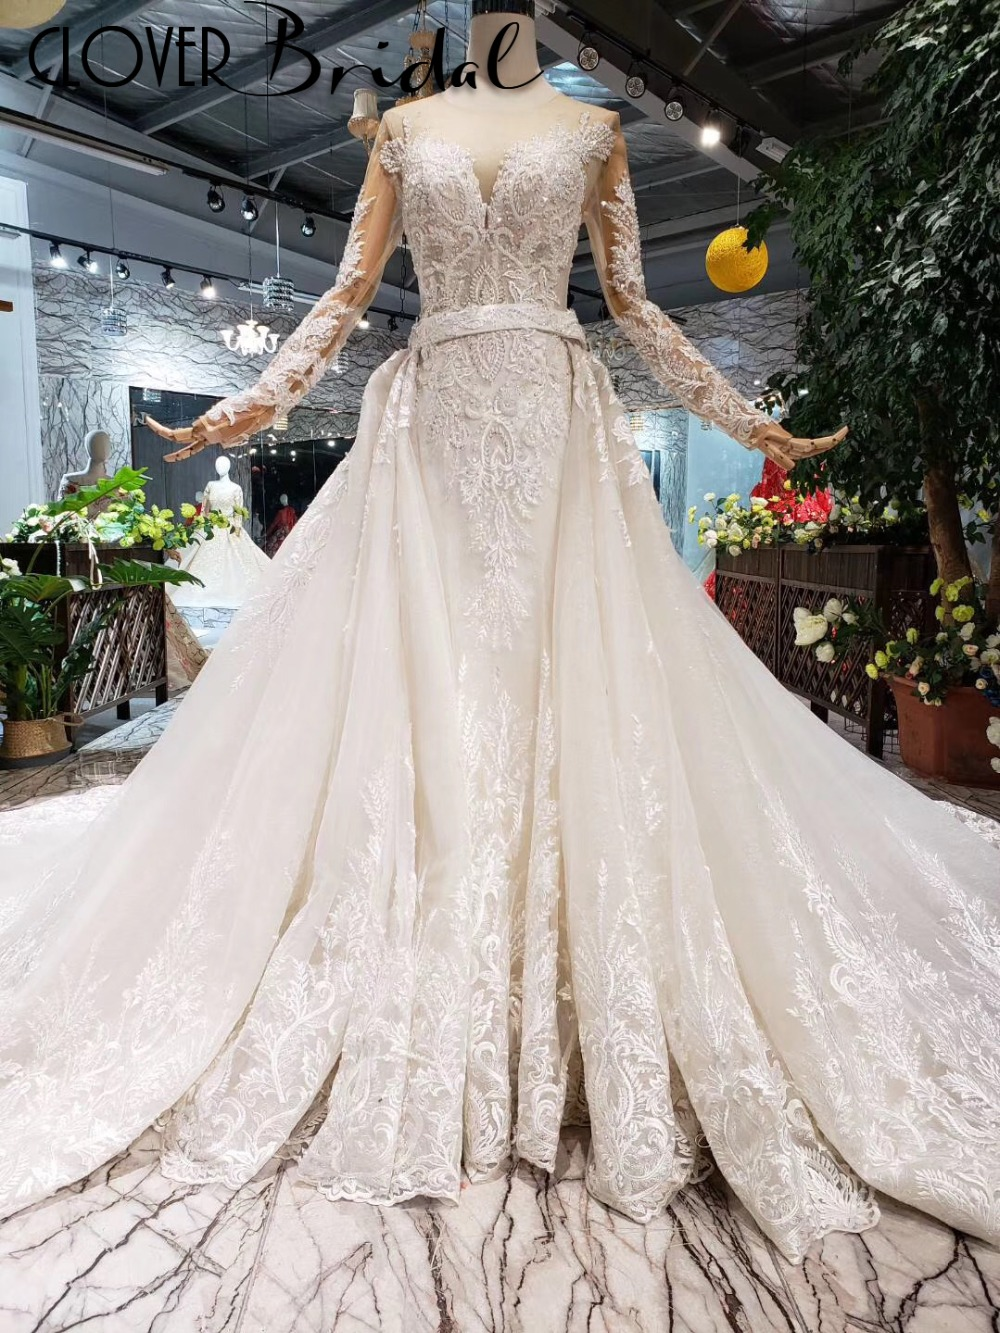 CloverBridal high quality Europe America style long sleeves lace tulle mermaid wedding dresses 2019 with removable long train